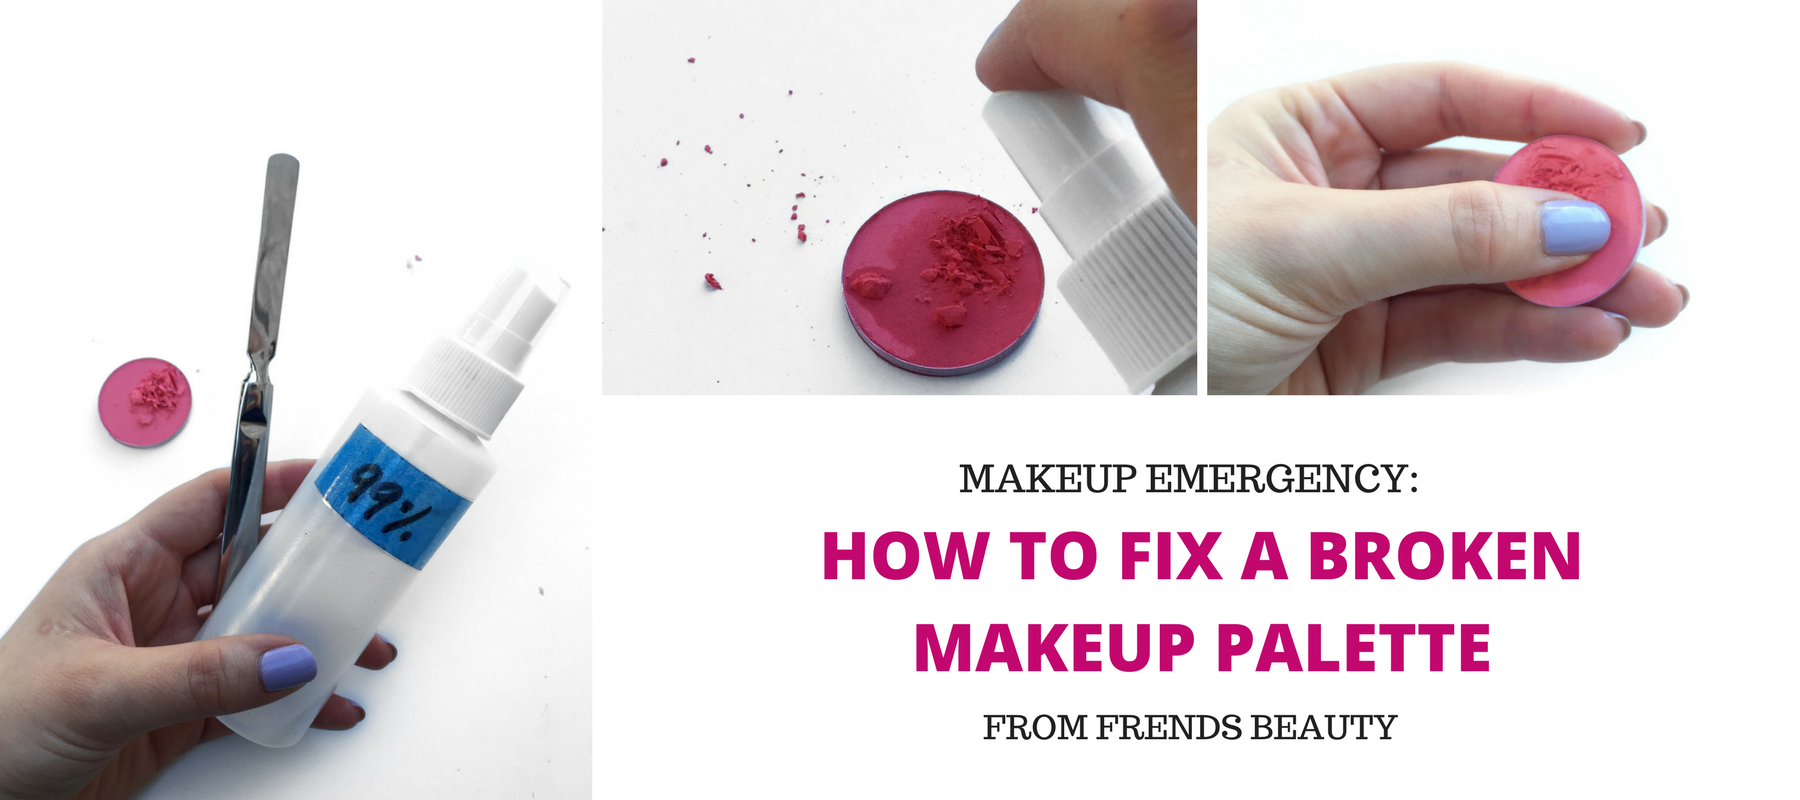 Beauty Emergency: How To Fix A Broken Makeup Palette